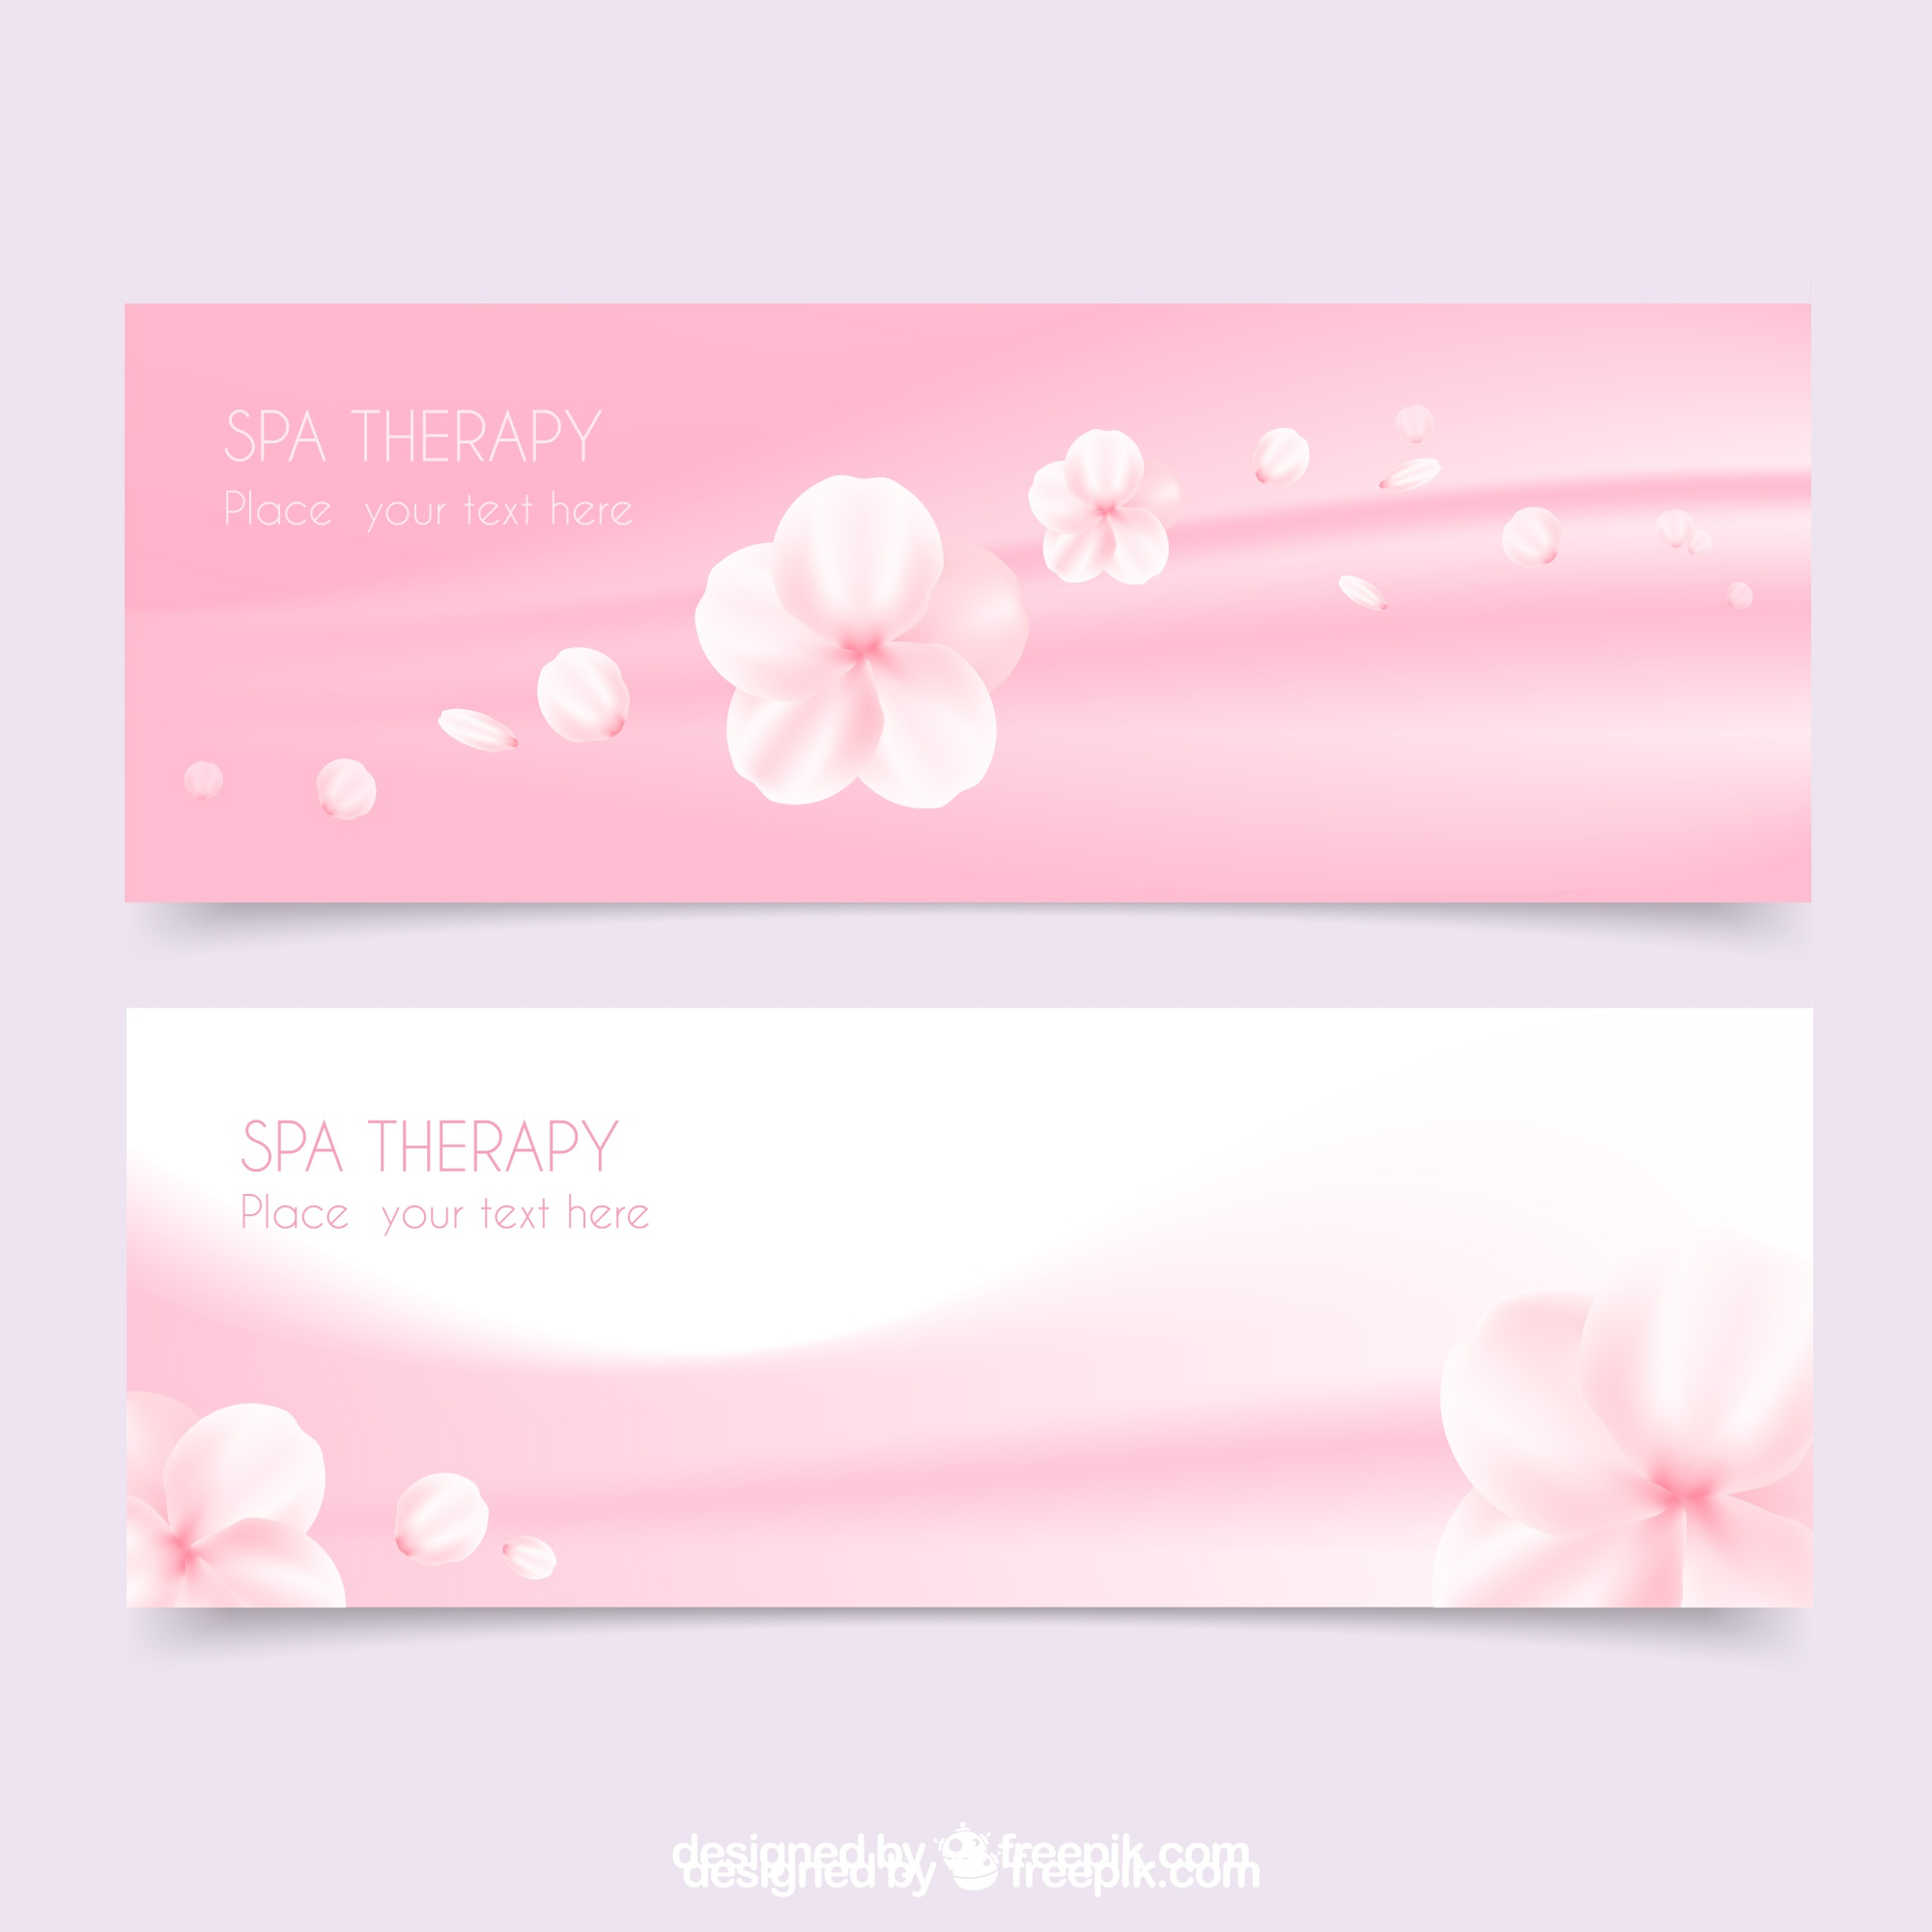 Spa banners in pink color with flowers